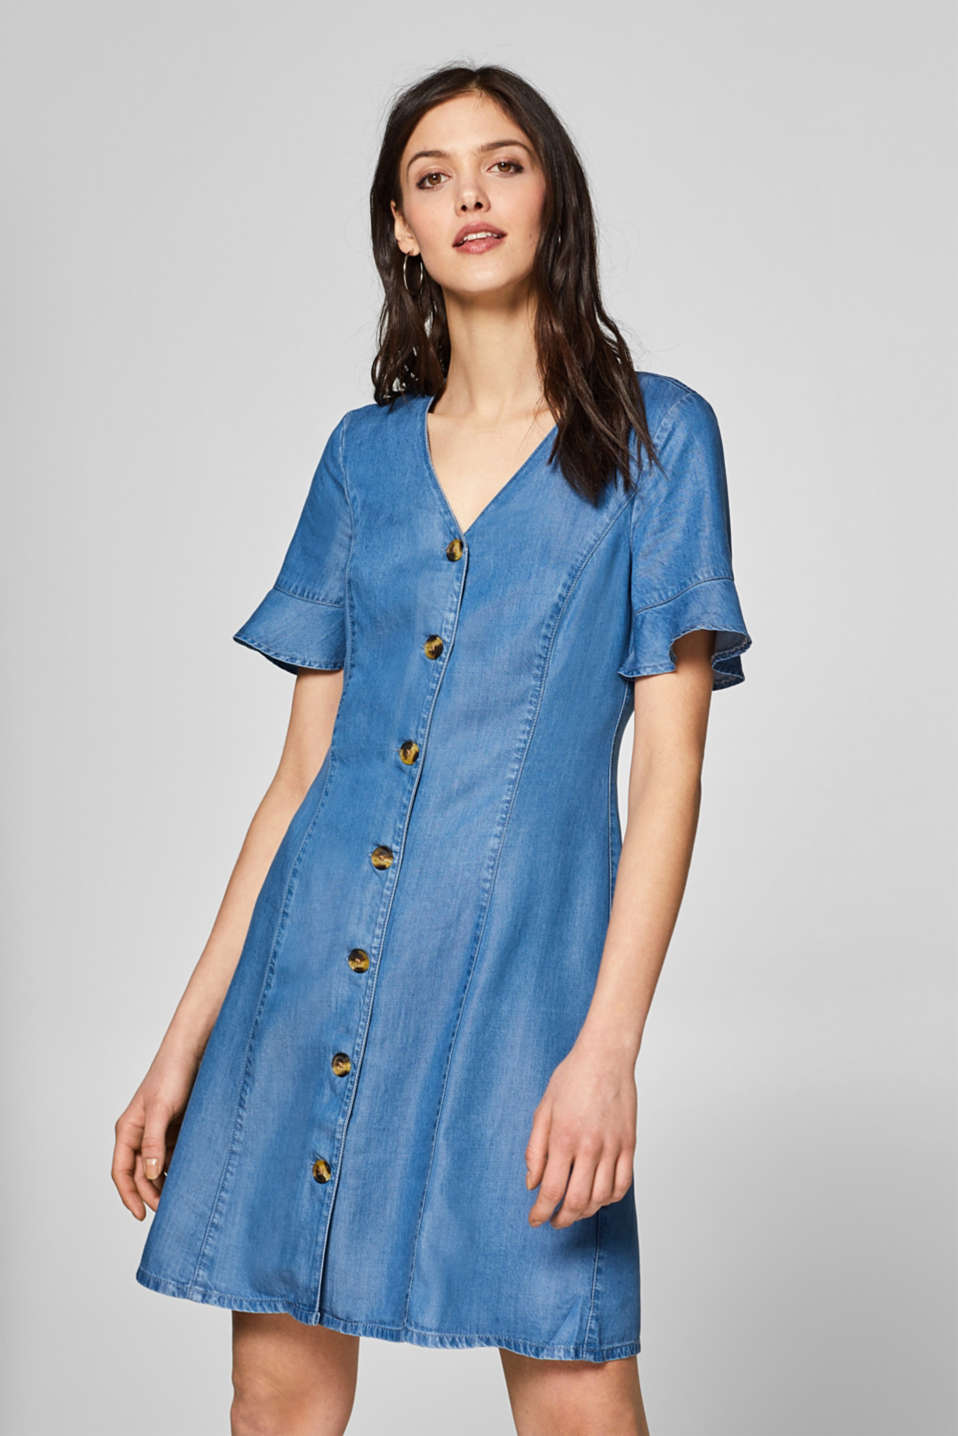 Esprit - Denim dress with flounce sleeves, 100% lyocell